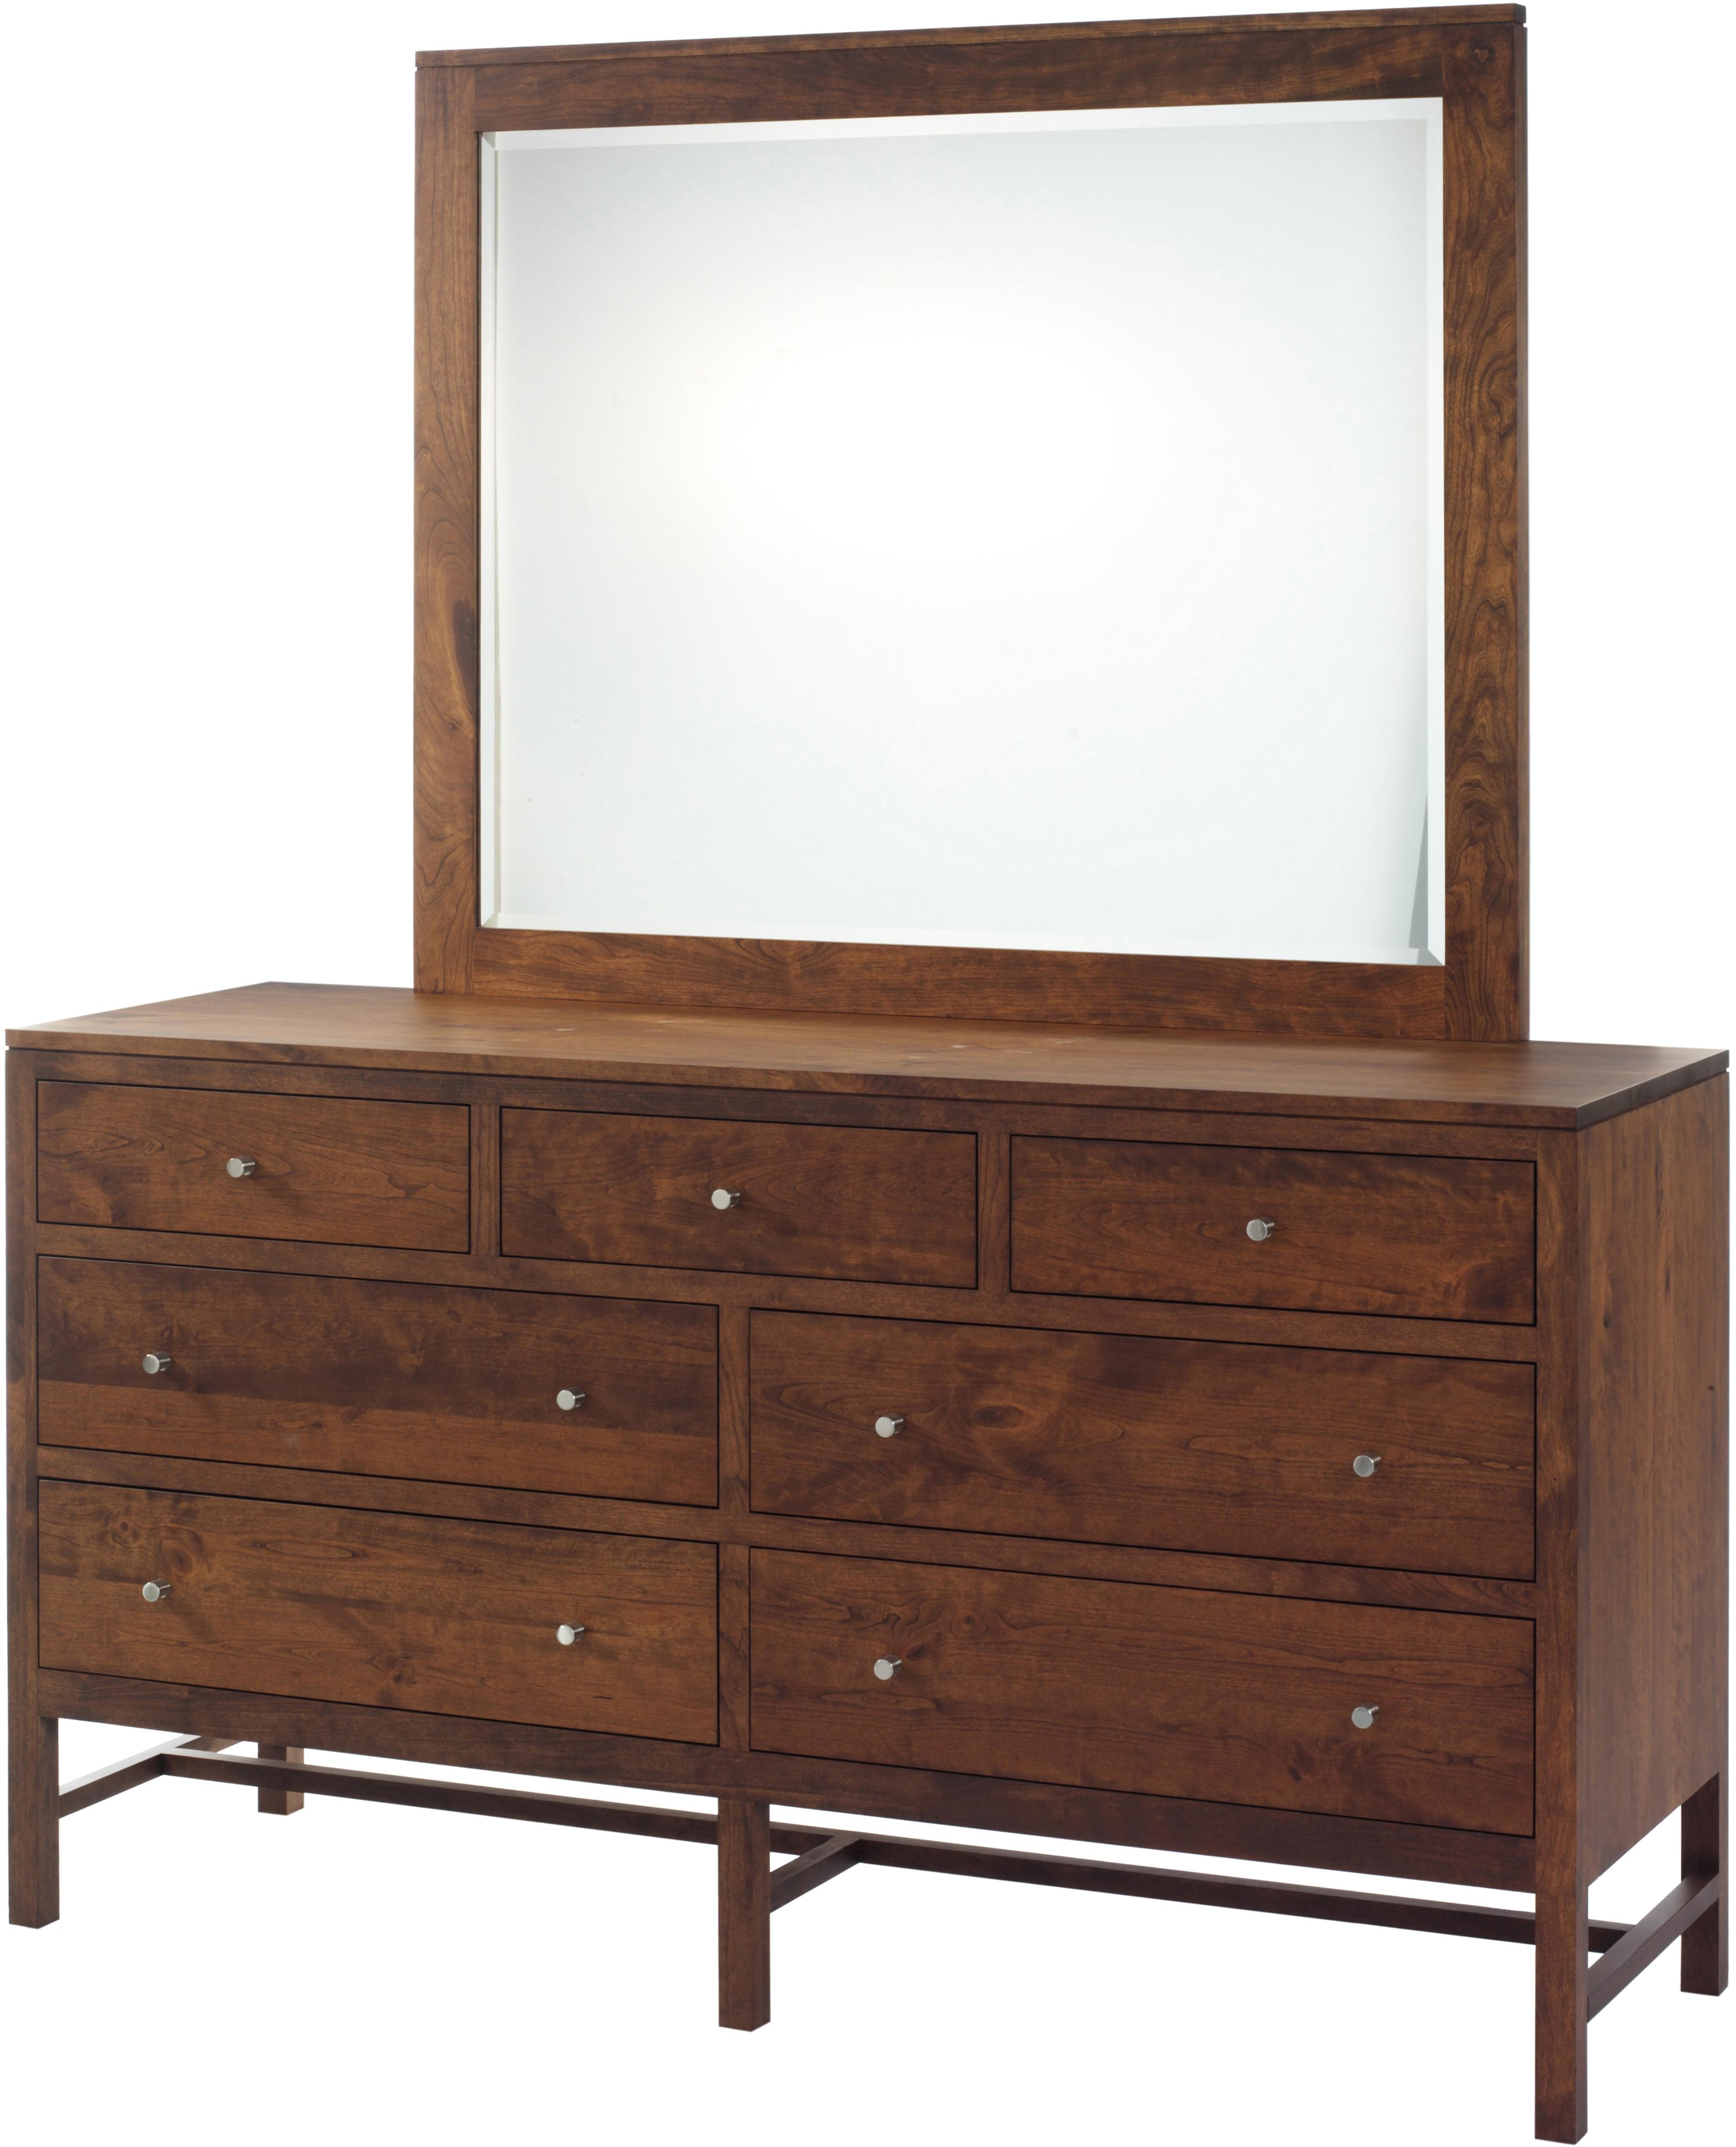 Lynnwood Dresser and Mirror Set by Millcraft at Saugerties Furniture Mart